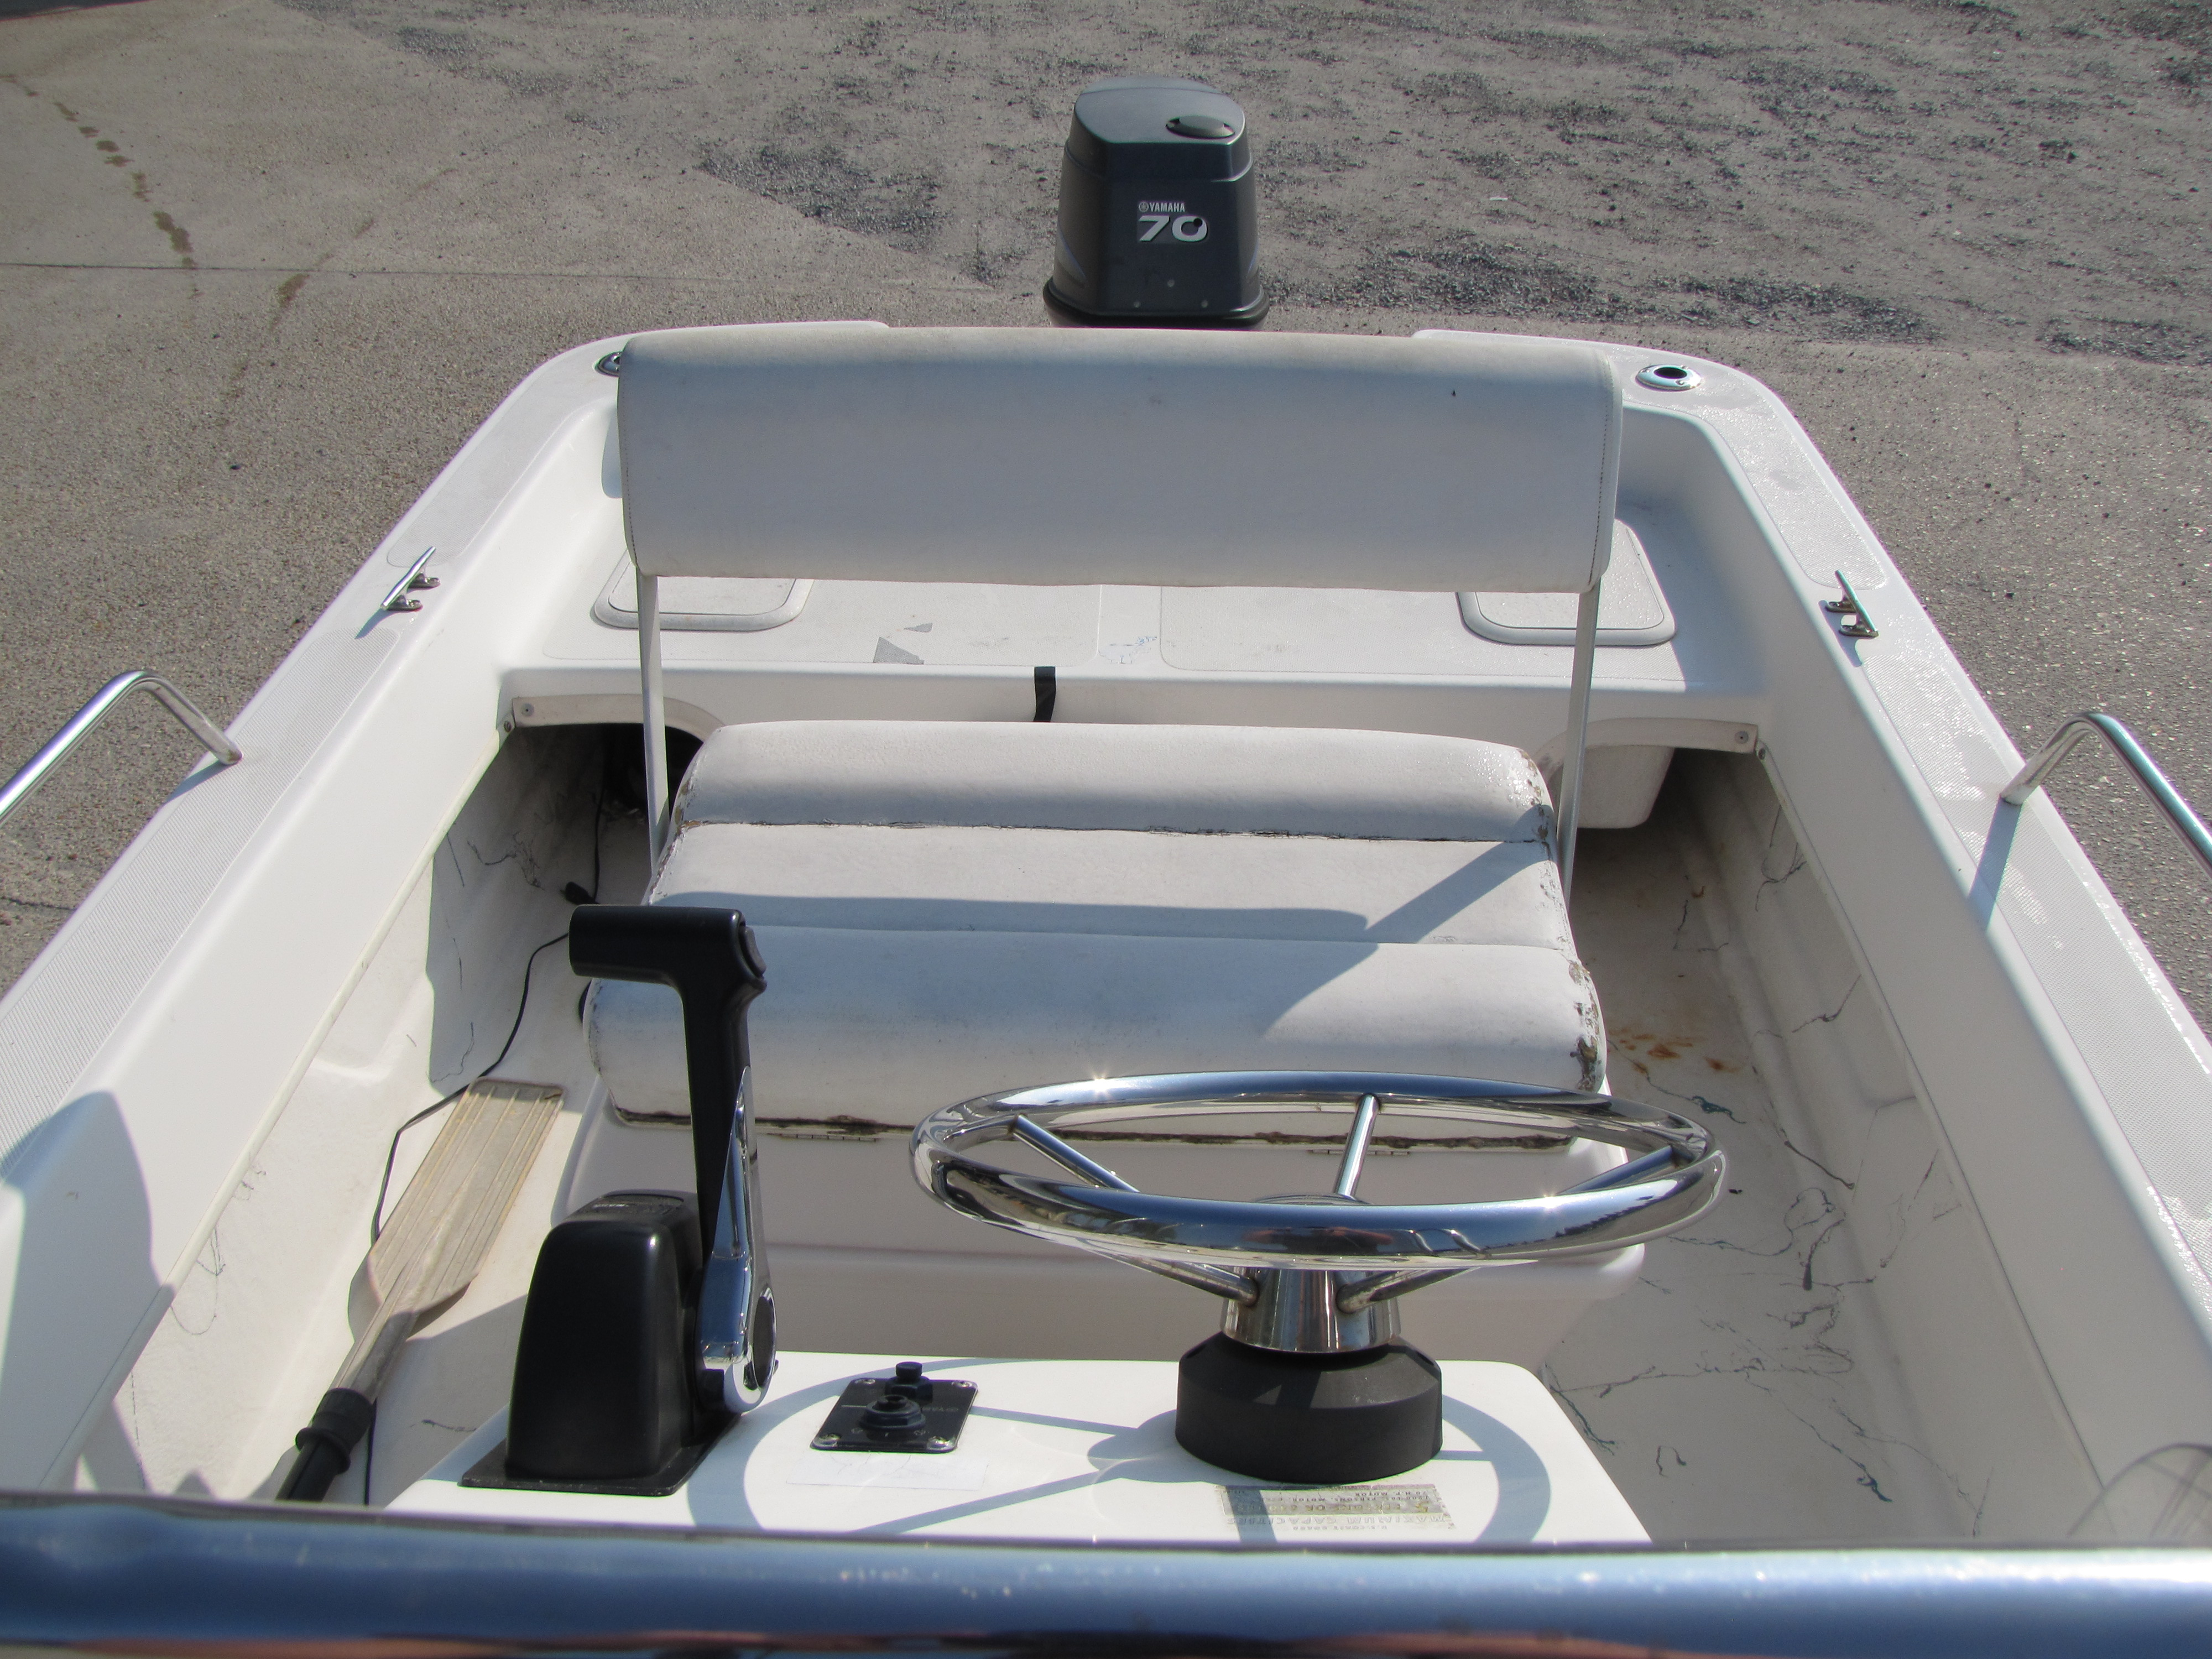 2009 Sundance boat for sale, model of the boat is 17 cc & Image # 14 of 15